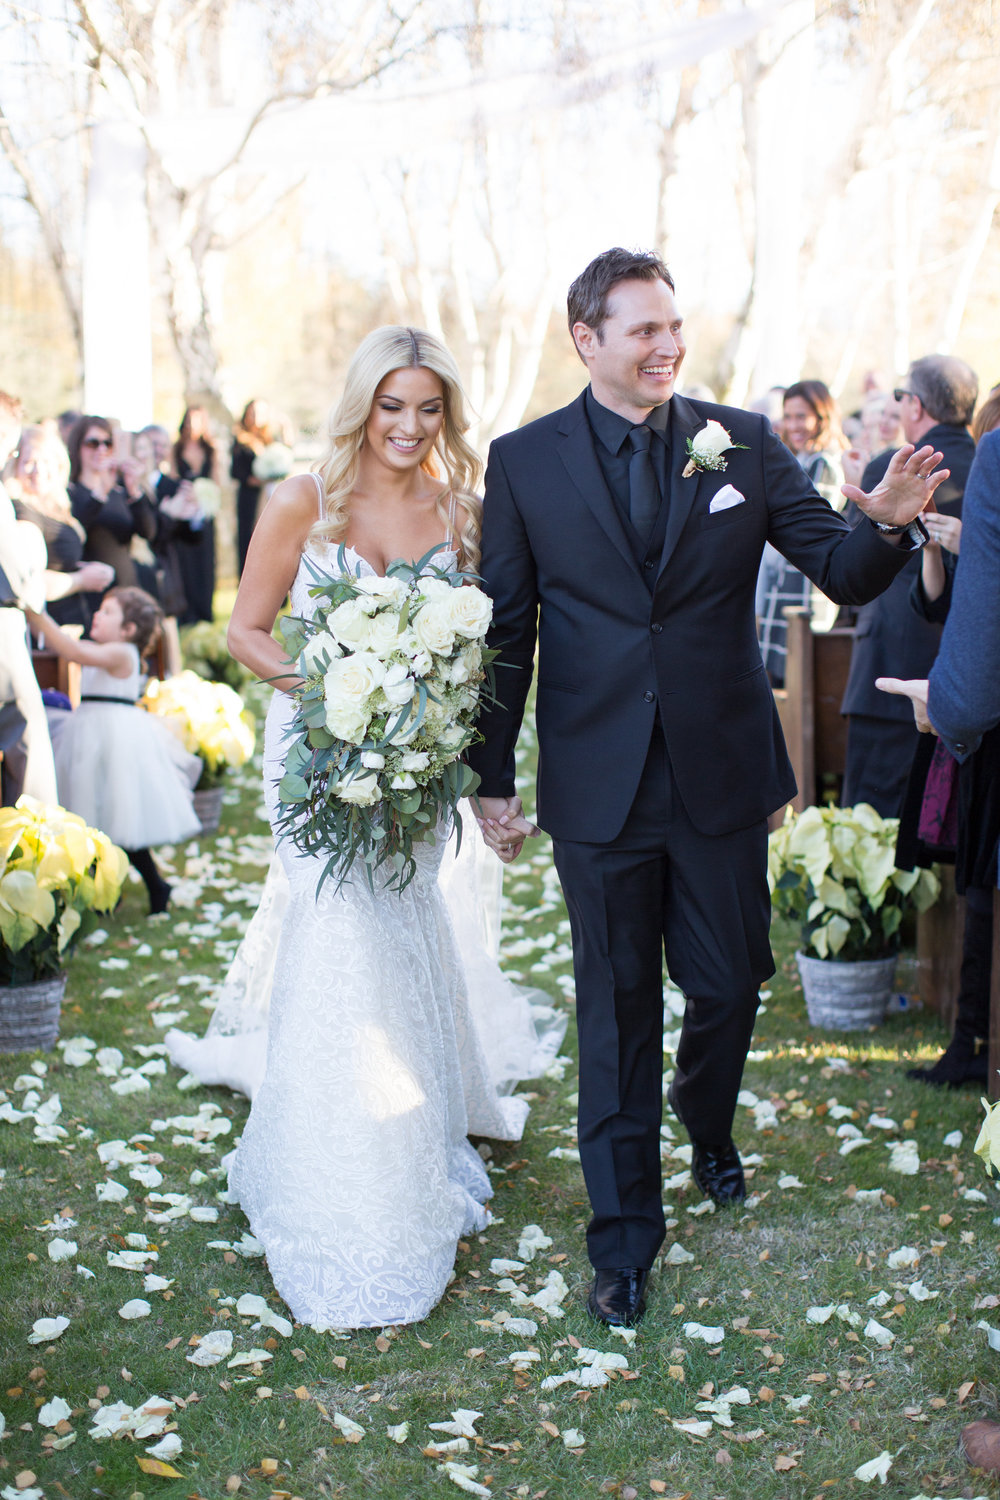 www.santabarbarawedding.com | Whispering Rose Ranch | Ann Johnson Events | Anna J Photo | Ceremony